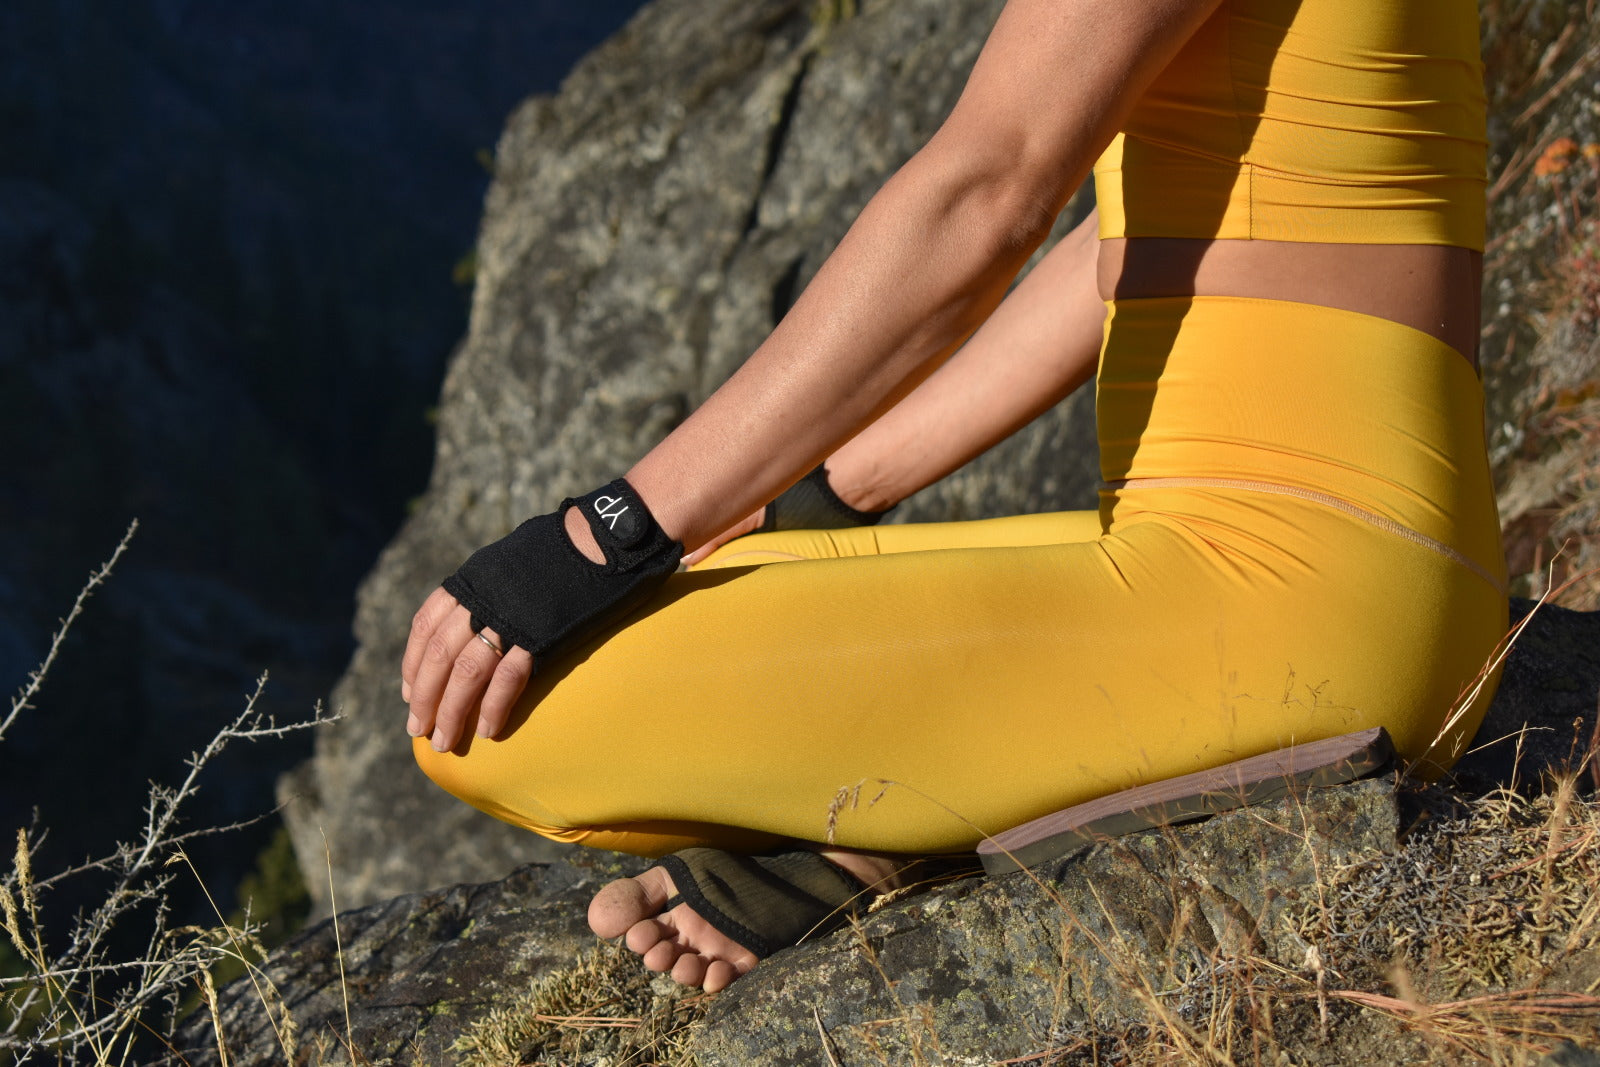 YogaPaws Yoga Gloves and Yoga Sox